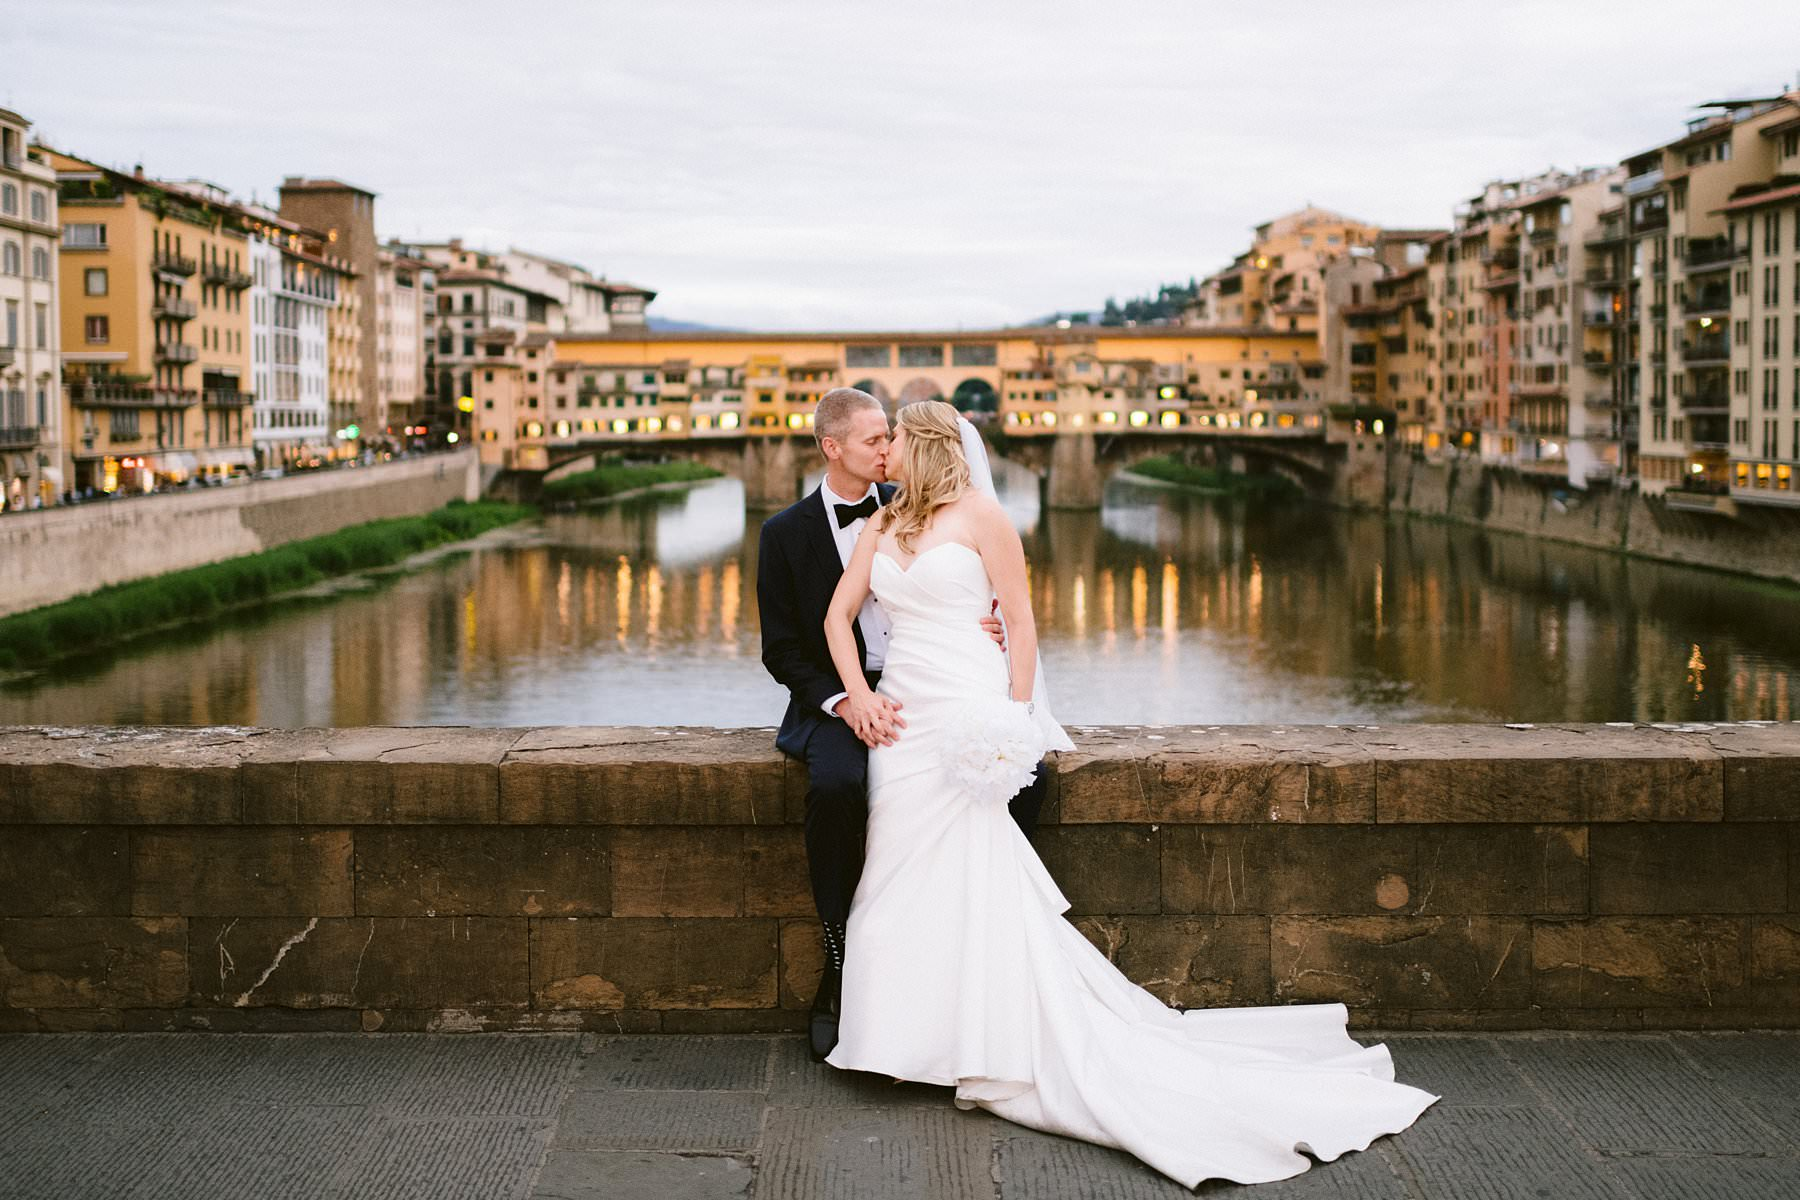 Beth and Evan's exquisite wedding in Florence: just like a dream. Bride and groom portraits in the most iconic and fascinating spots of the city of Florence, such as the breathtaking and romantic Ponte Vecchio